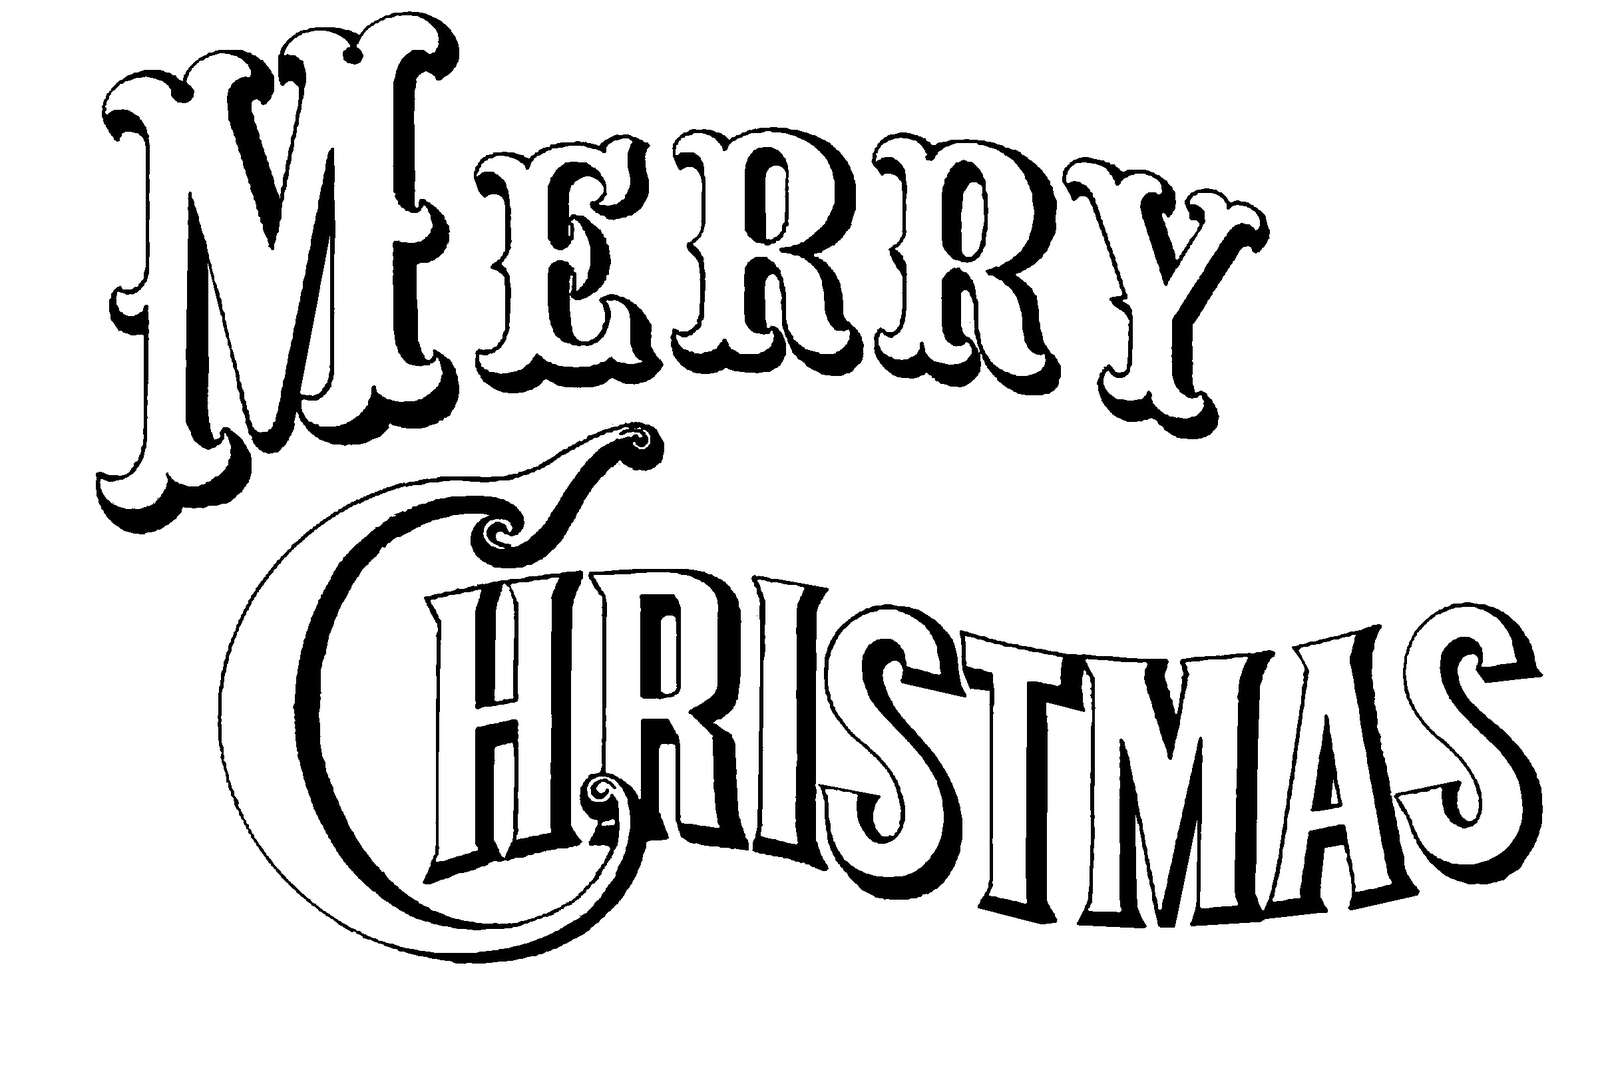 Images For Religious Christmas Black And White Clip Art